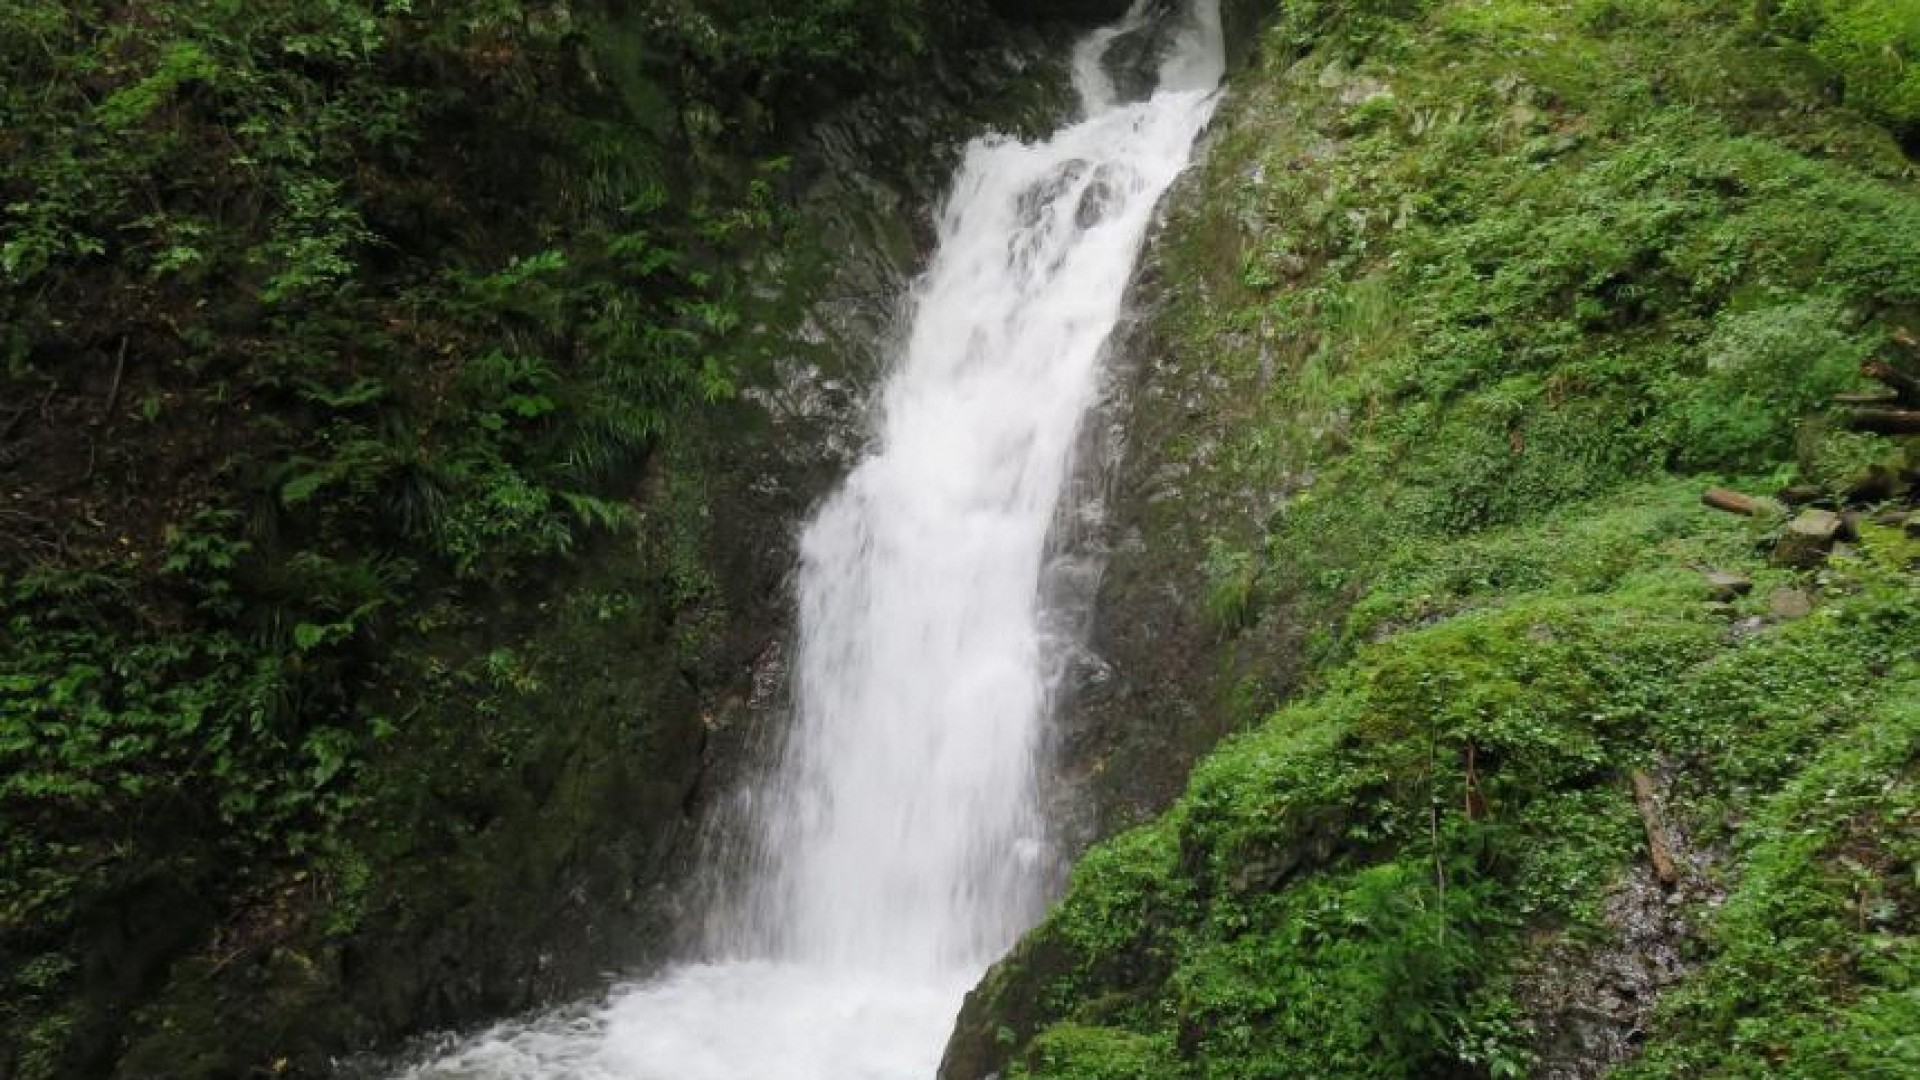 Higeso Fall (bearded monk's fall)